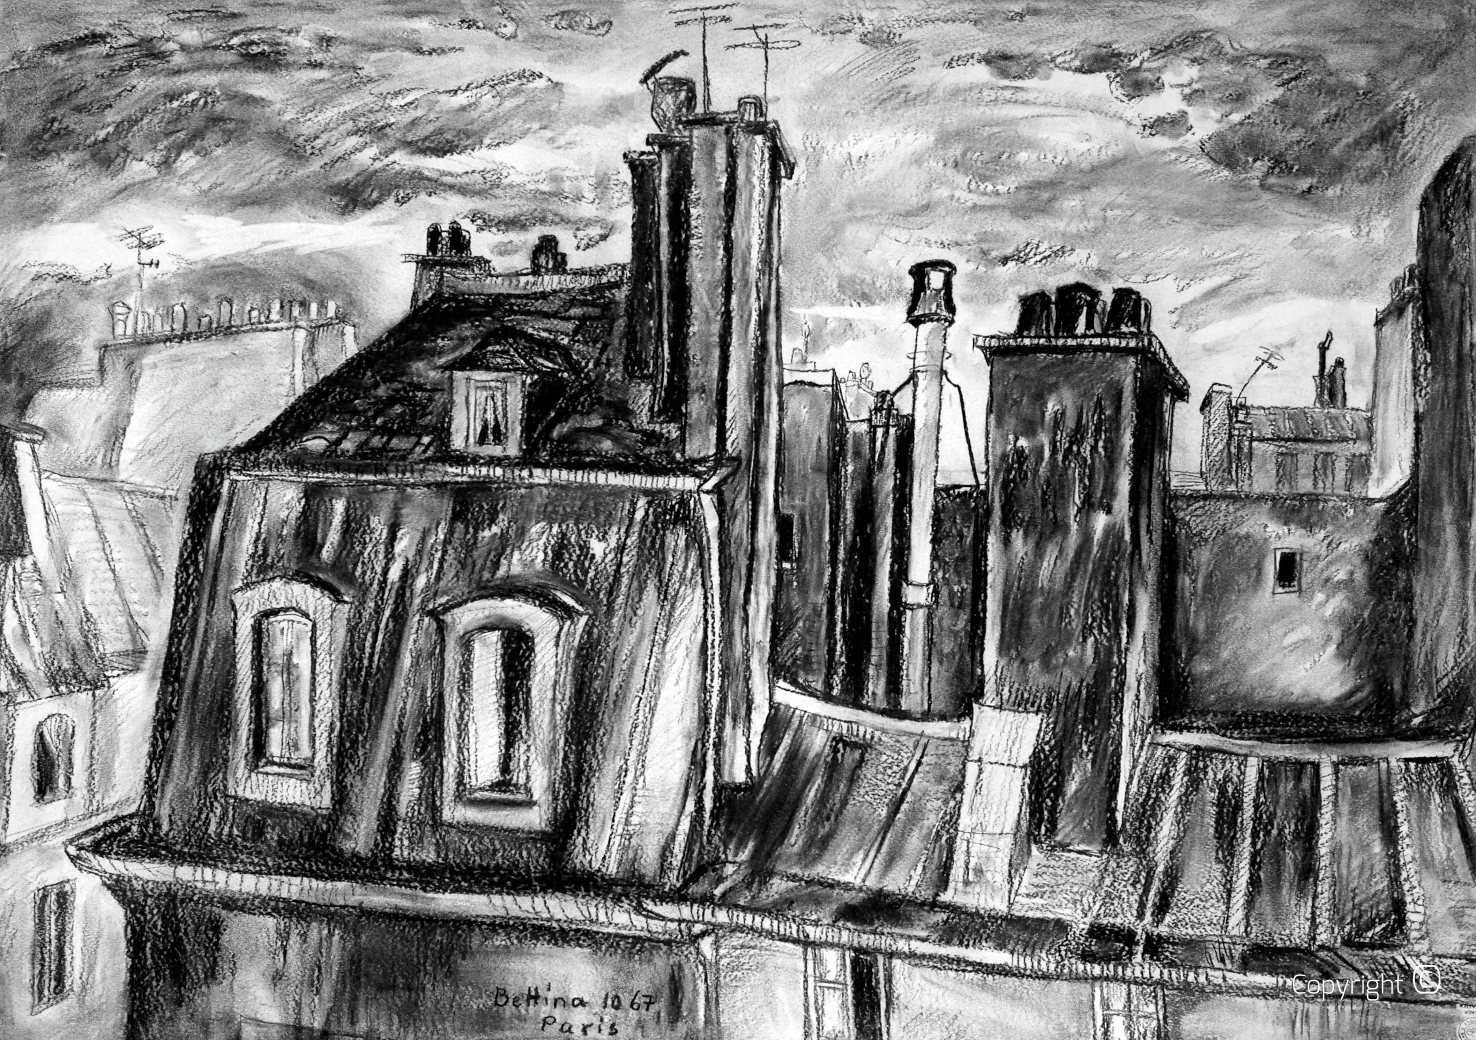 Coal study of the roofs of Paris, 1967